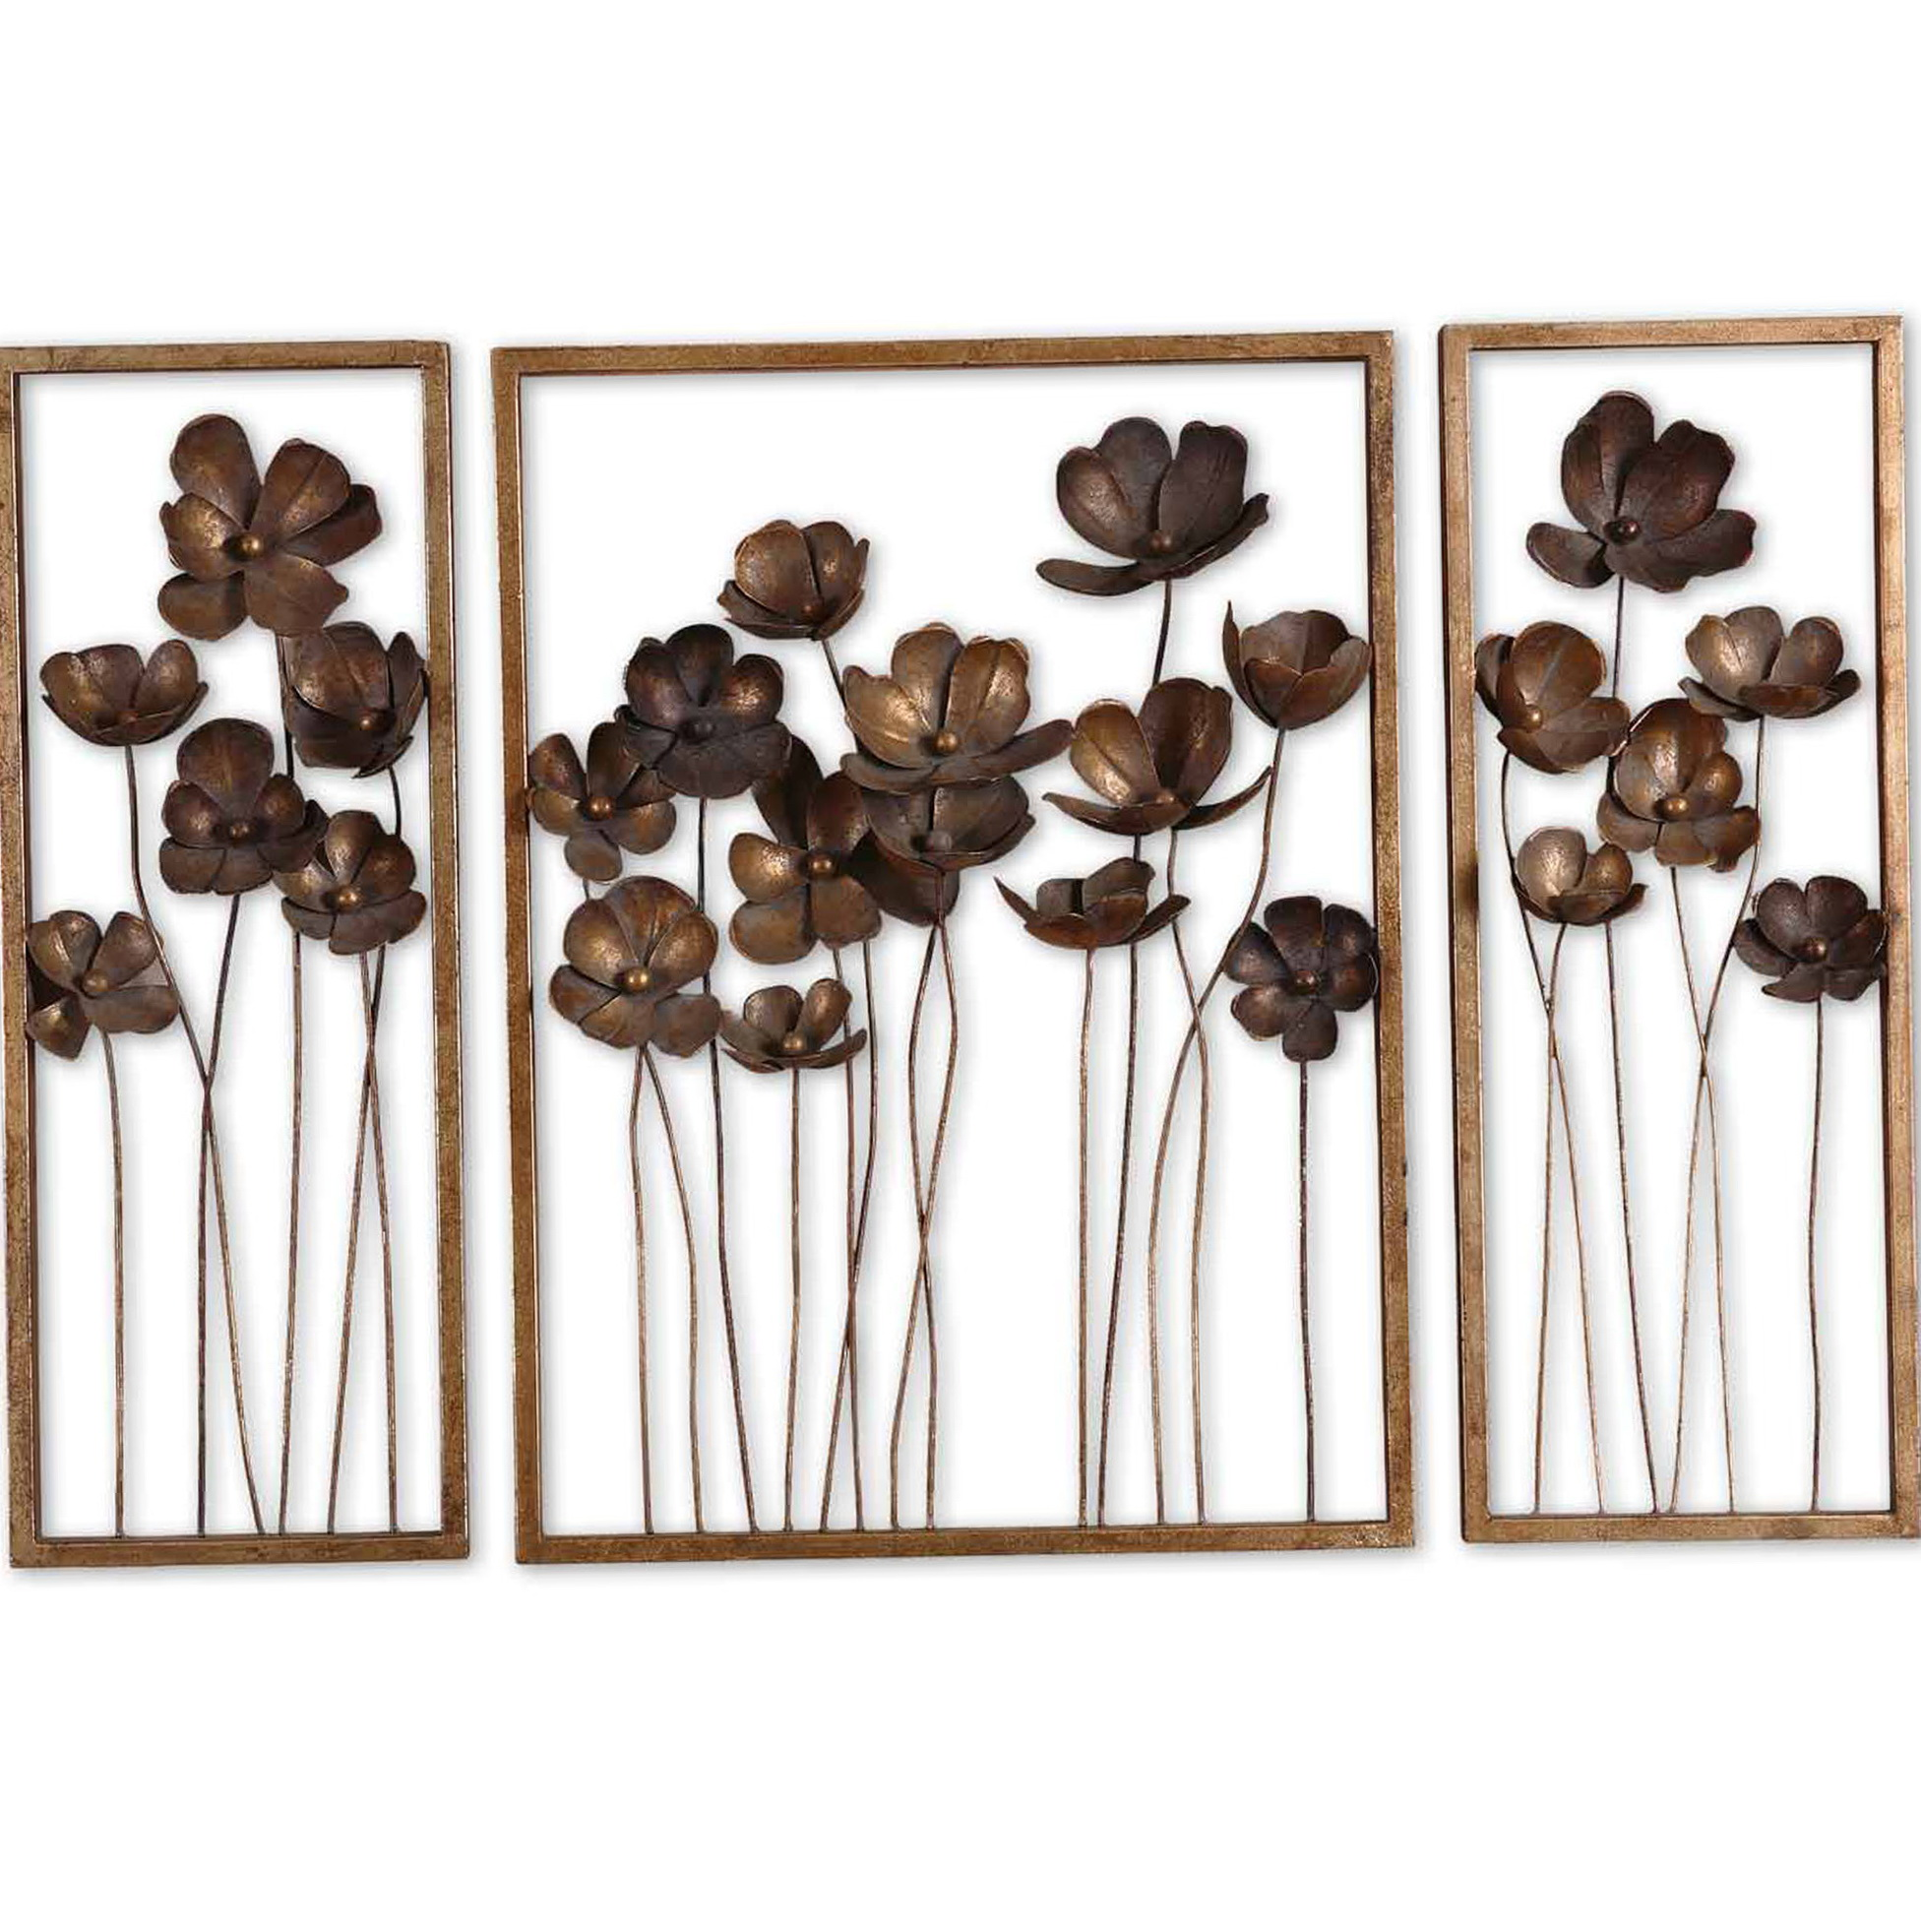 3 Pieces Wall Art Sets